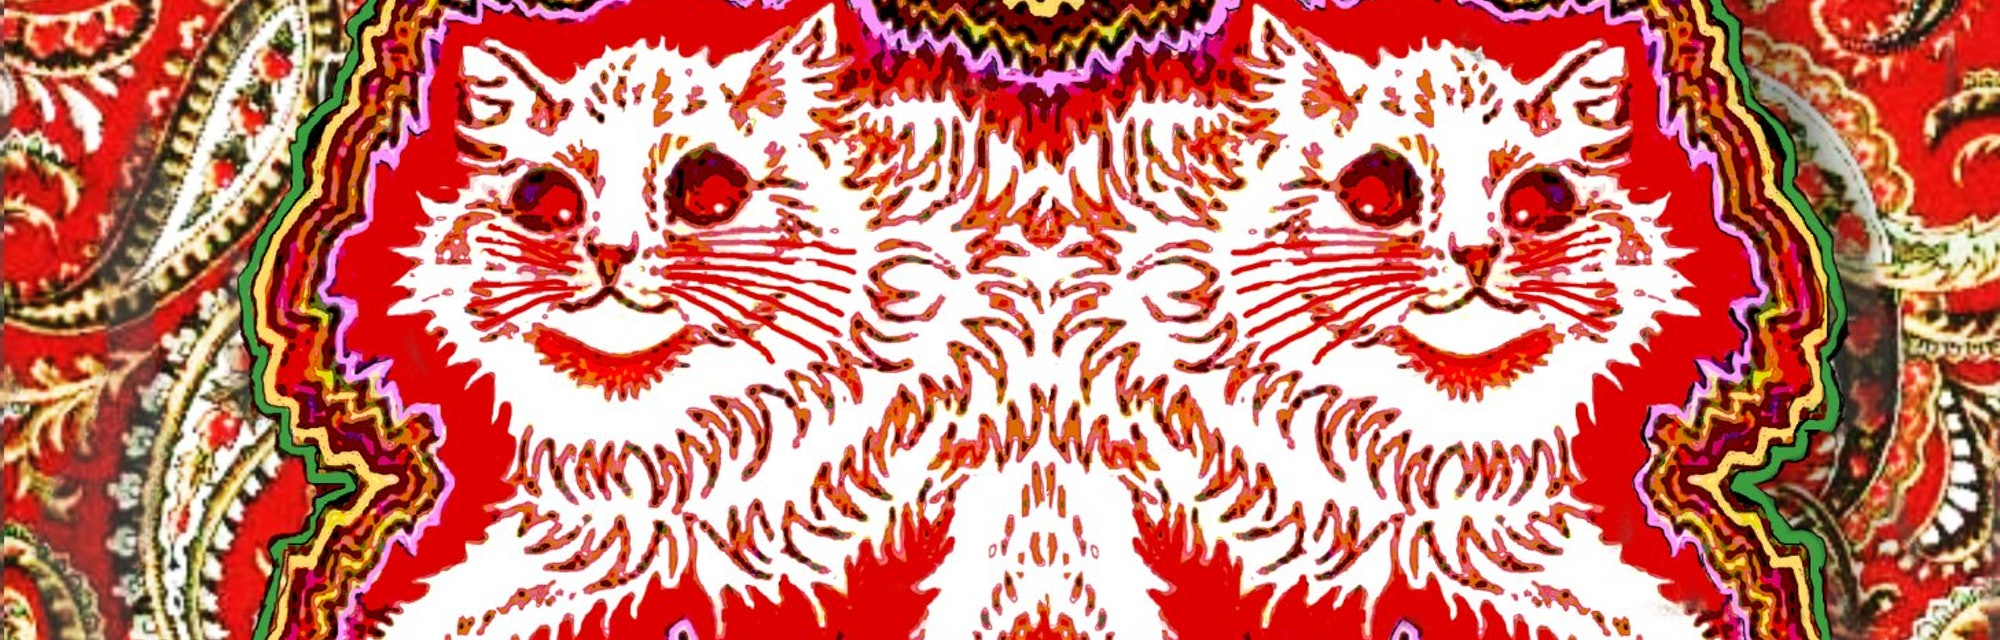 cats in psychedelic colors